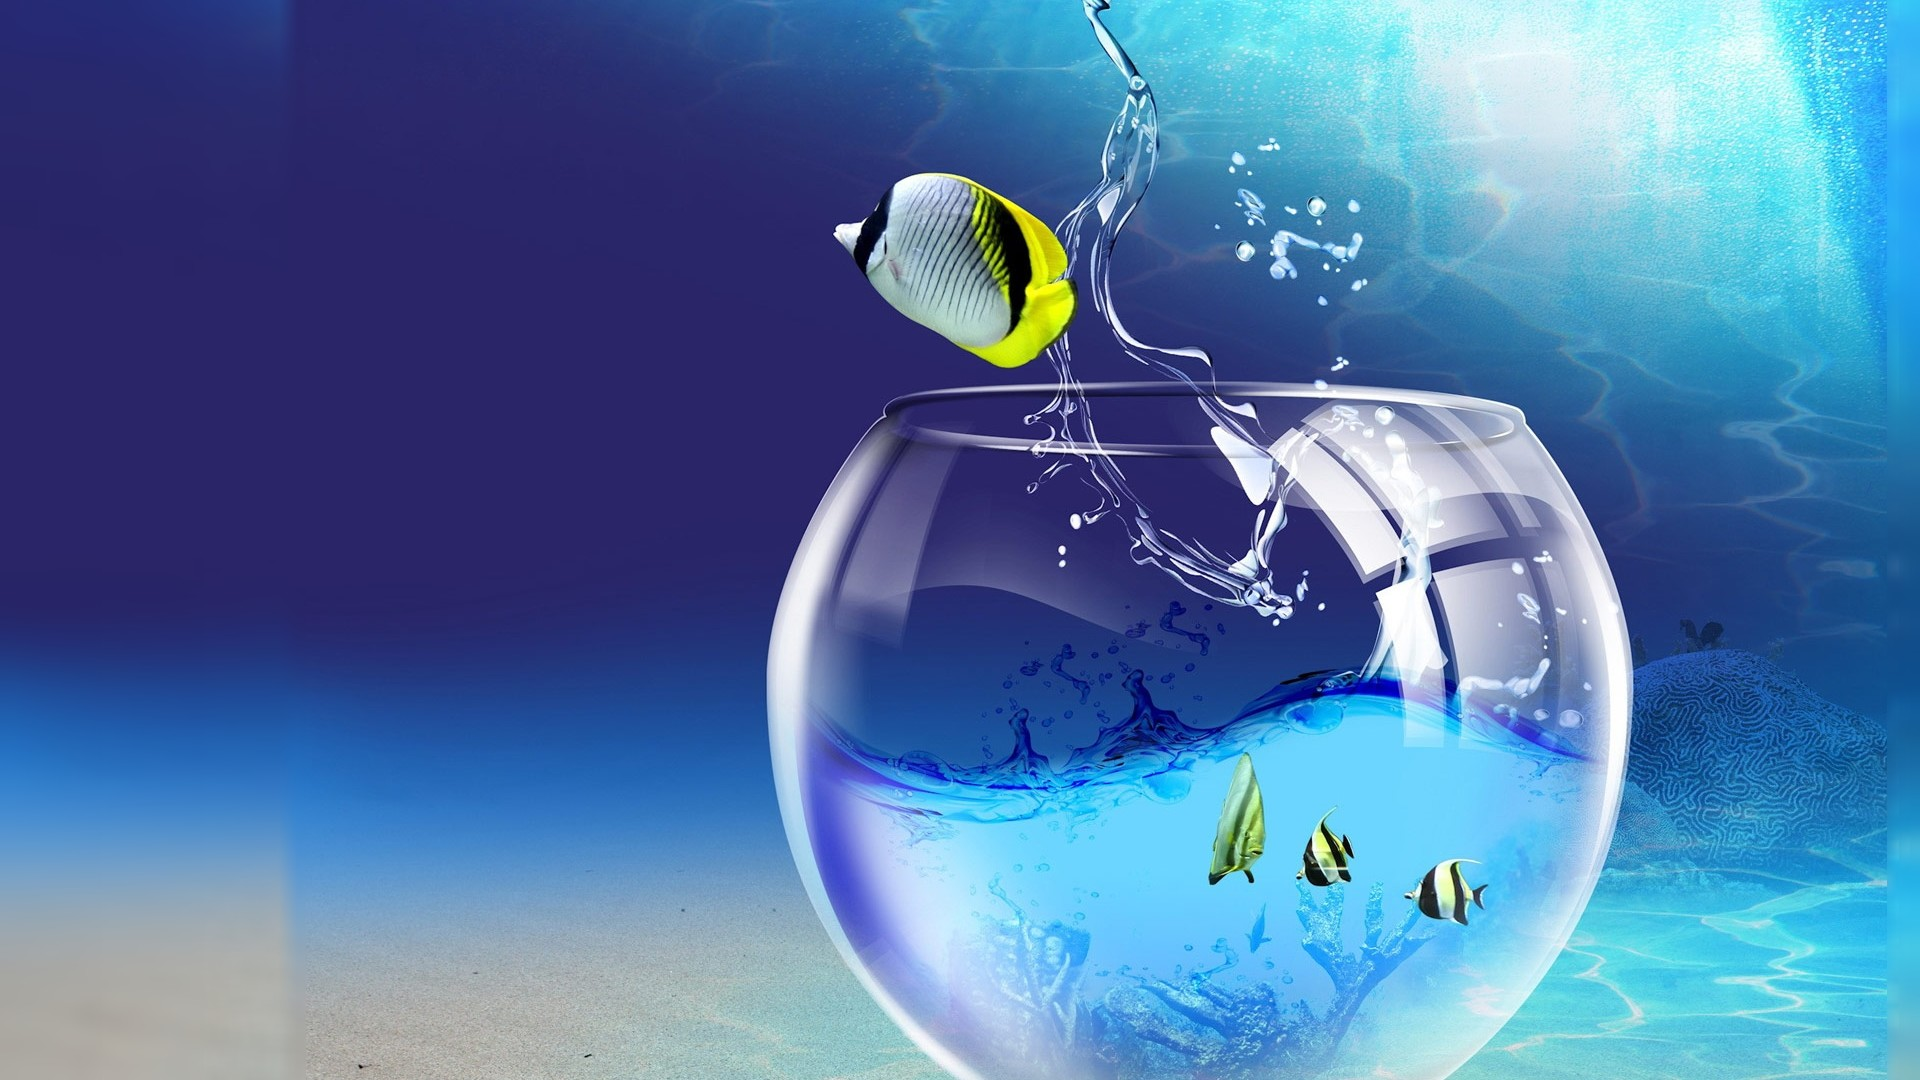 Wallpaper Pc Hd Wallpapers The Fish In Running 3d